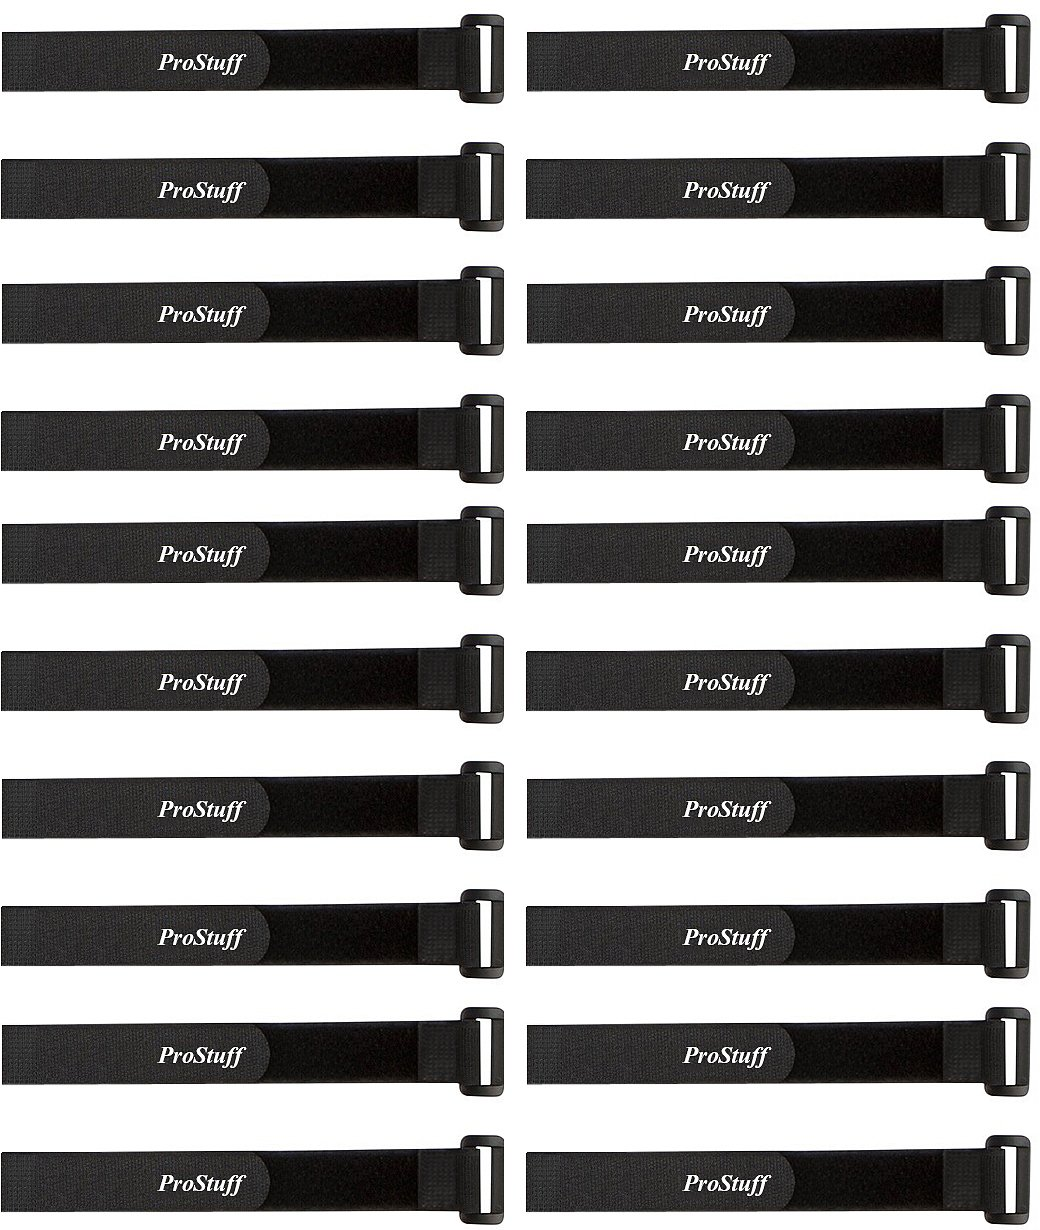 Hoses Bundling Boxes ProStuff 5582704659 Wires Office 20 Pack 0.8 x 8 Reusable Hook and Loop Cinch Cable Tie Down Straps Set for Cord Management Home Garage